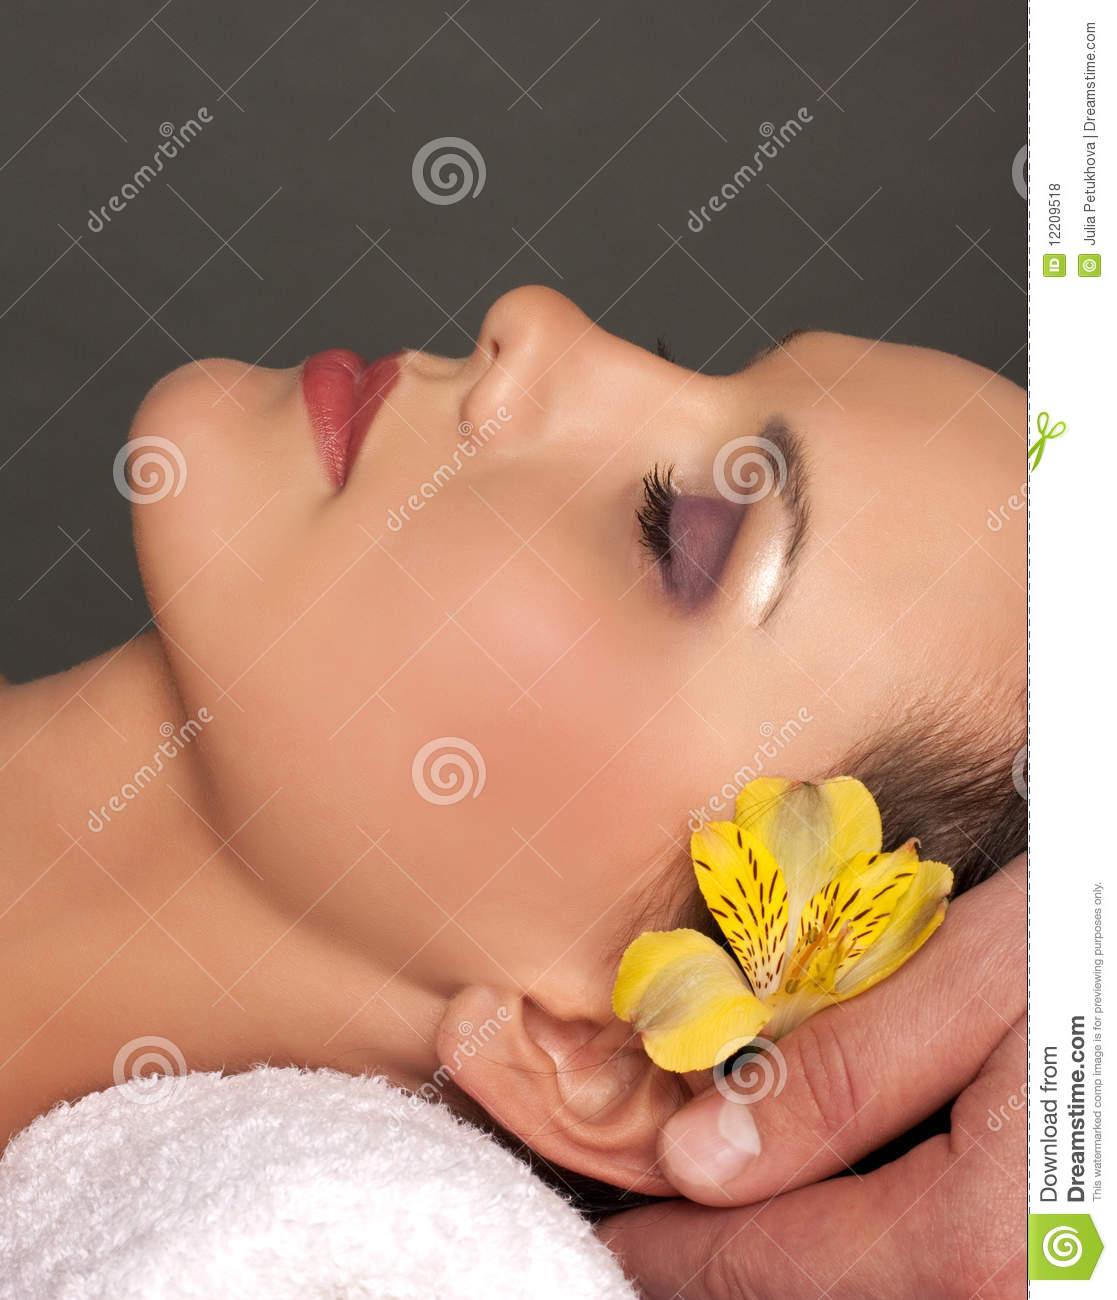 Facial massage and heads